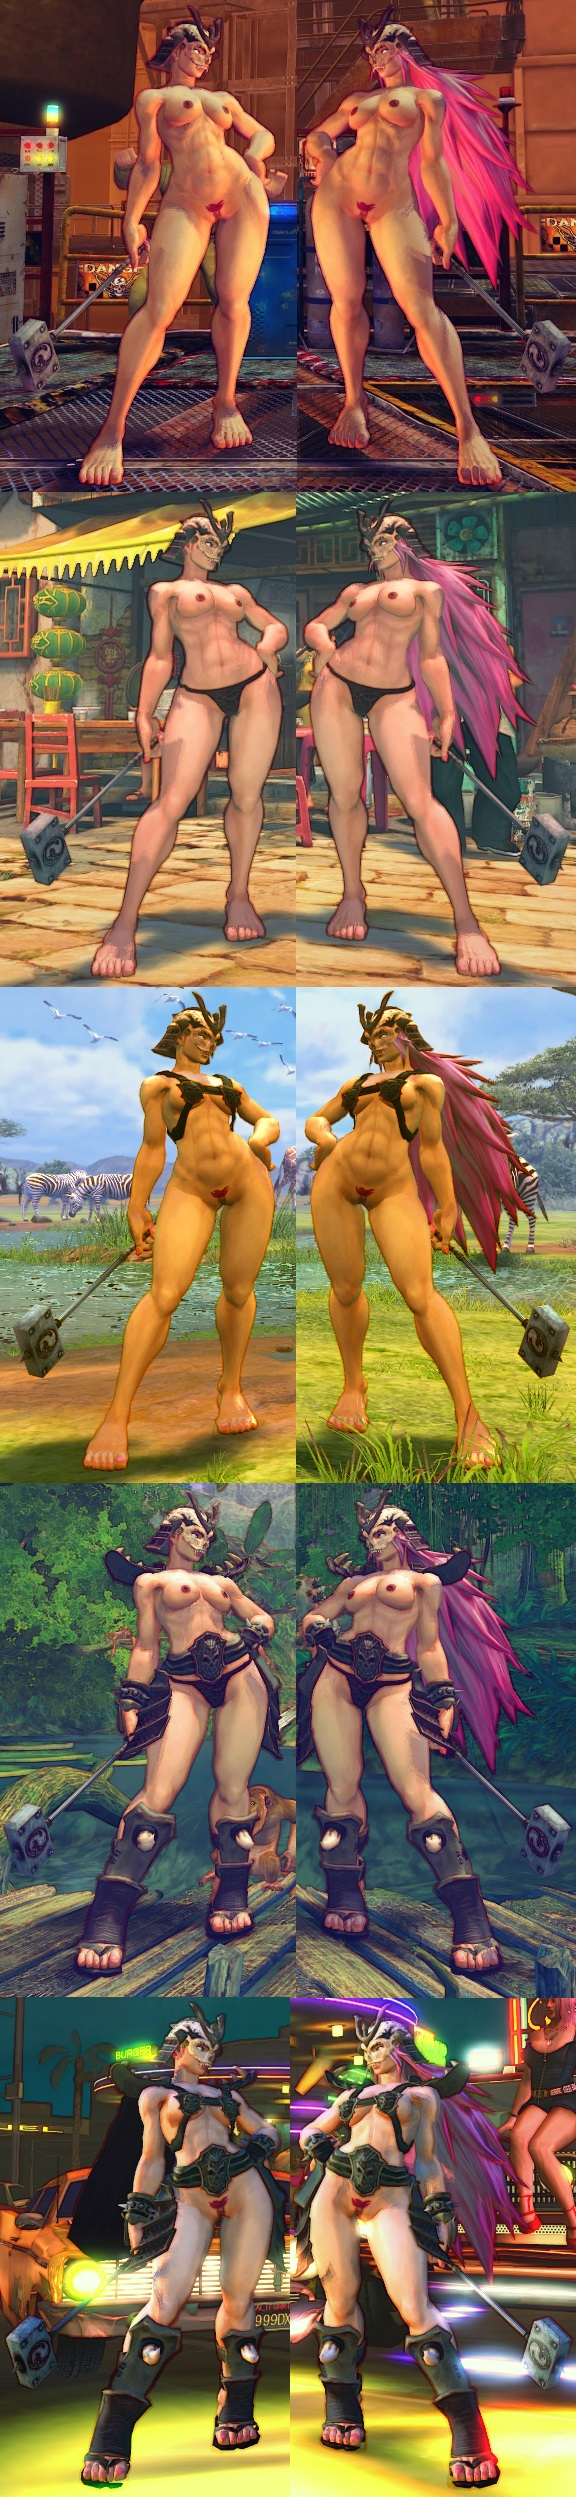 Street fighter 4 adult mods sex clips